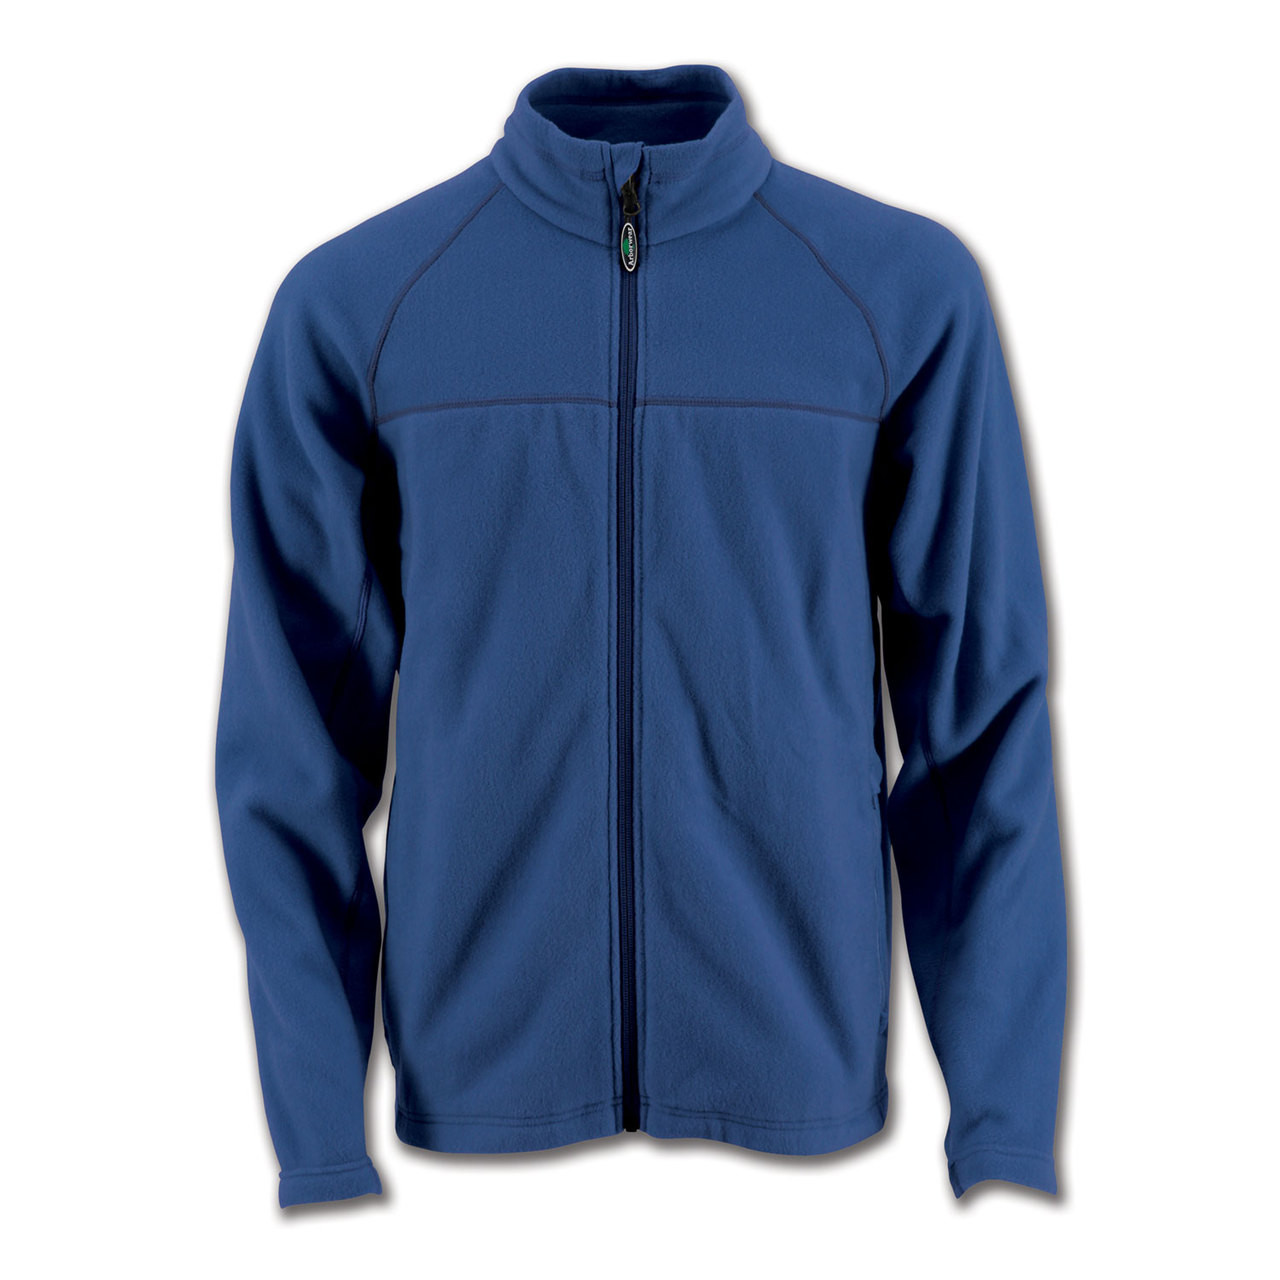 Arborwear Birch Fleece, Blue